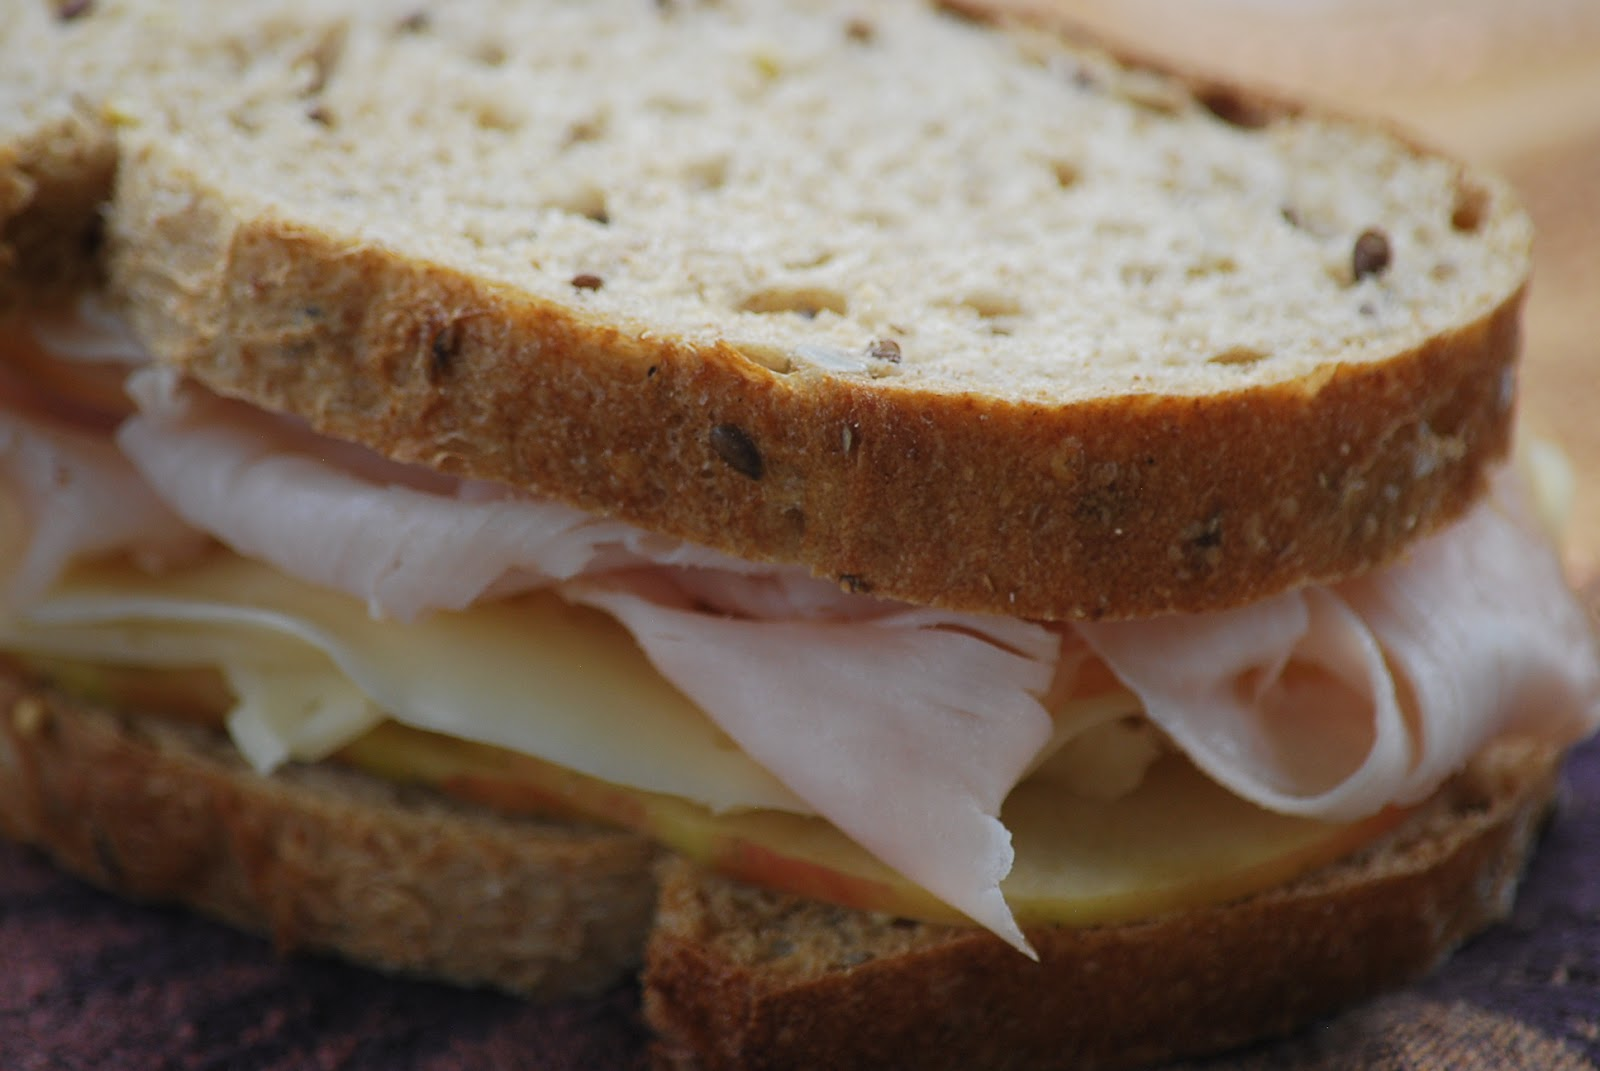 My story in recipes: Turkey, Apple and Swiss Sandwich